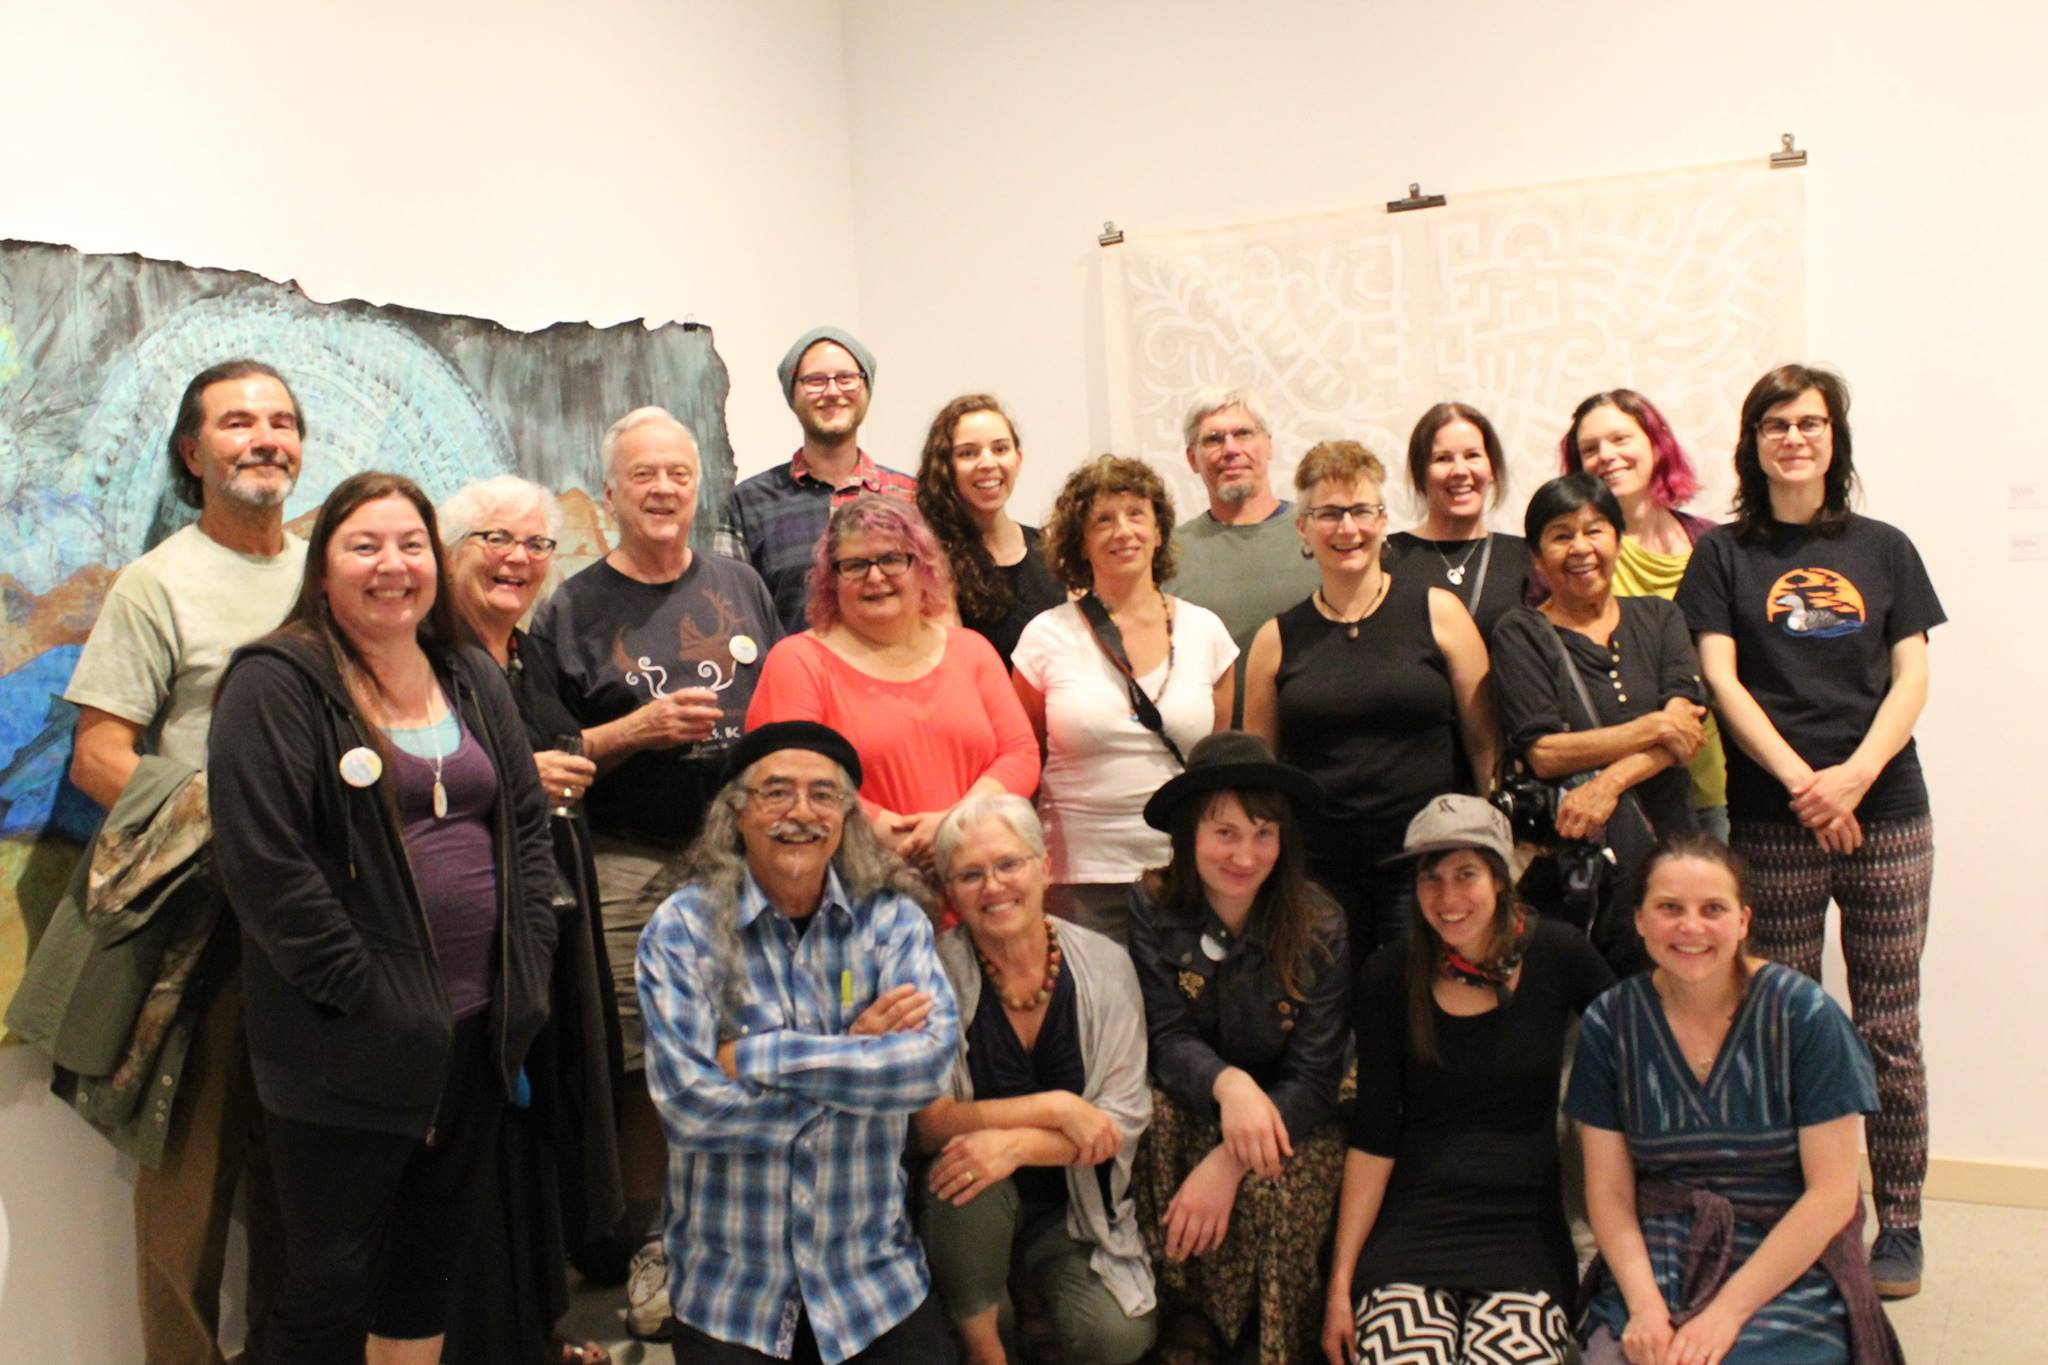 The artists of the Toni Onley Artists' Project who just wrapped up ten days of art making in Wells.